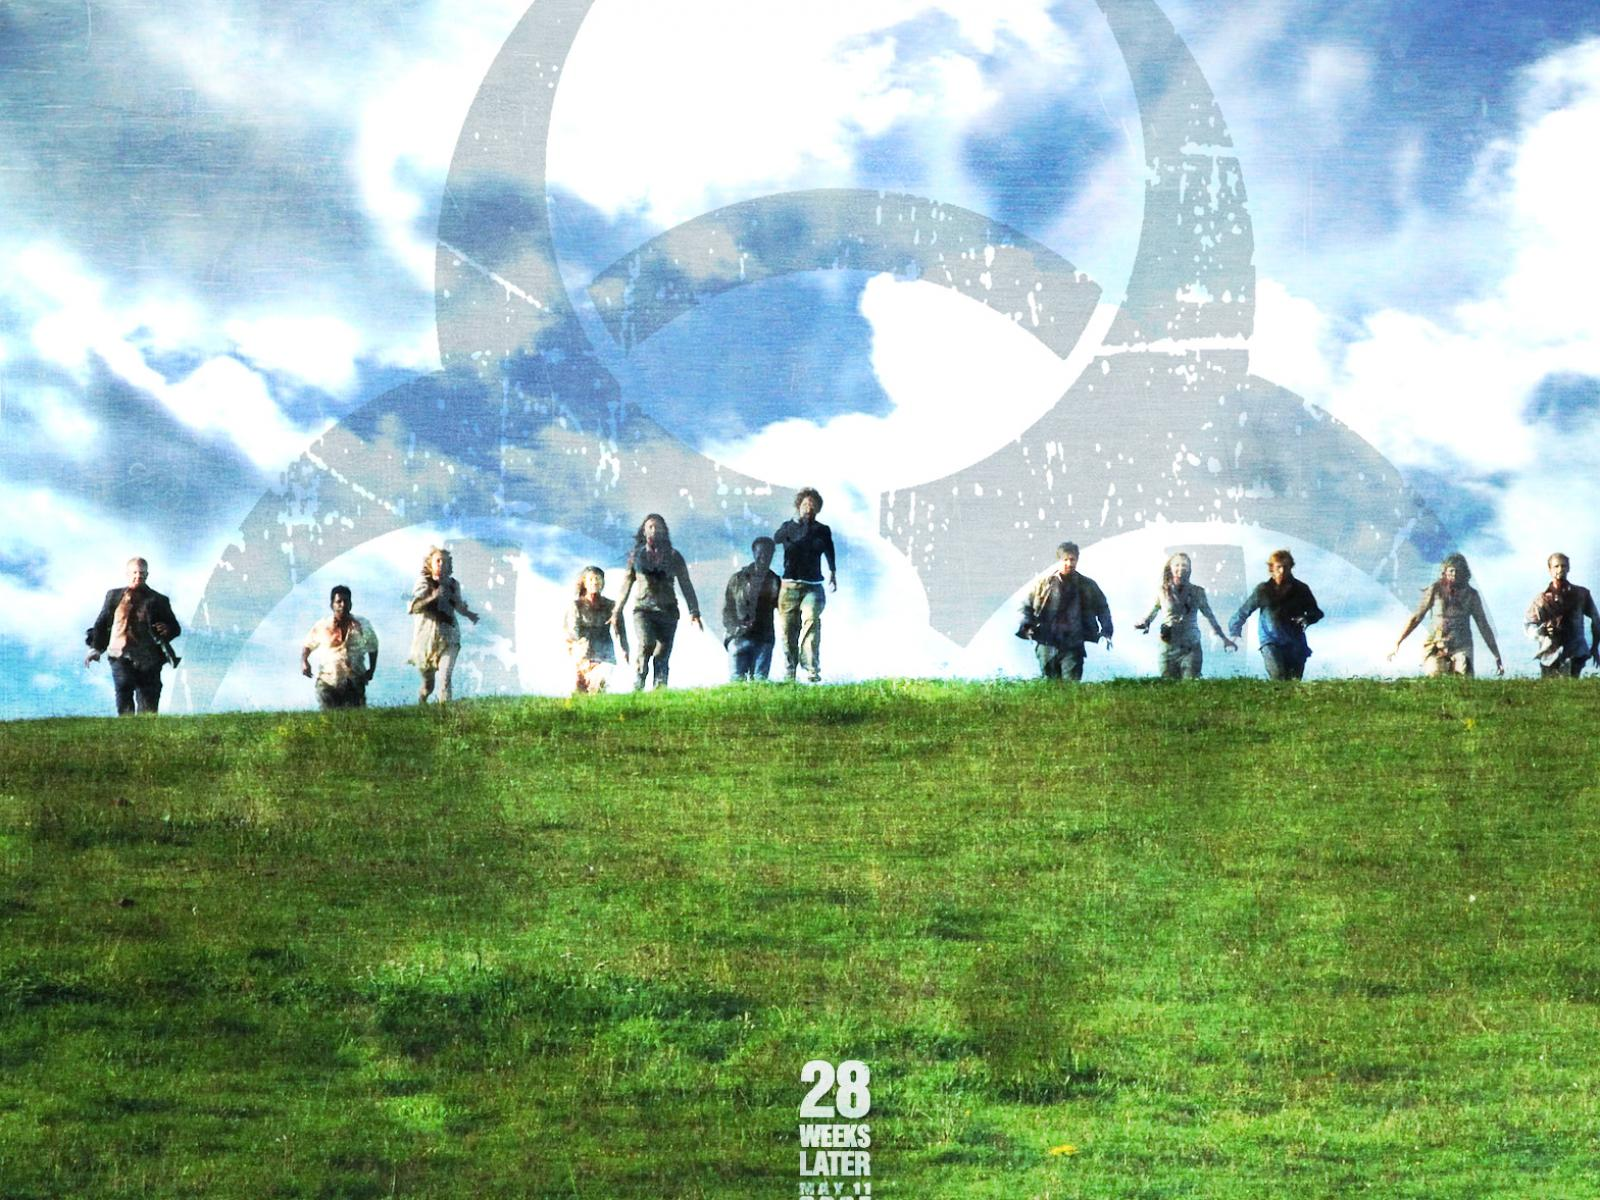 ���� 28 weeks later - � ������, ���������� 1600x1200